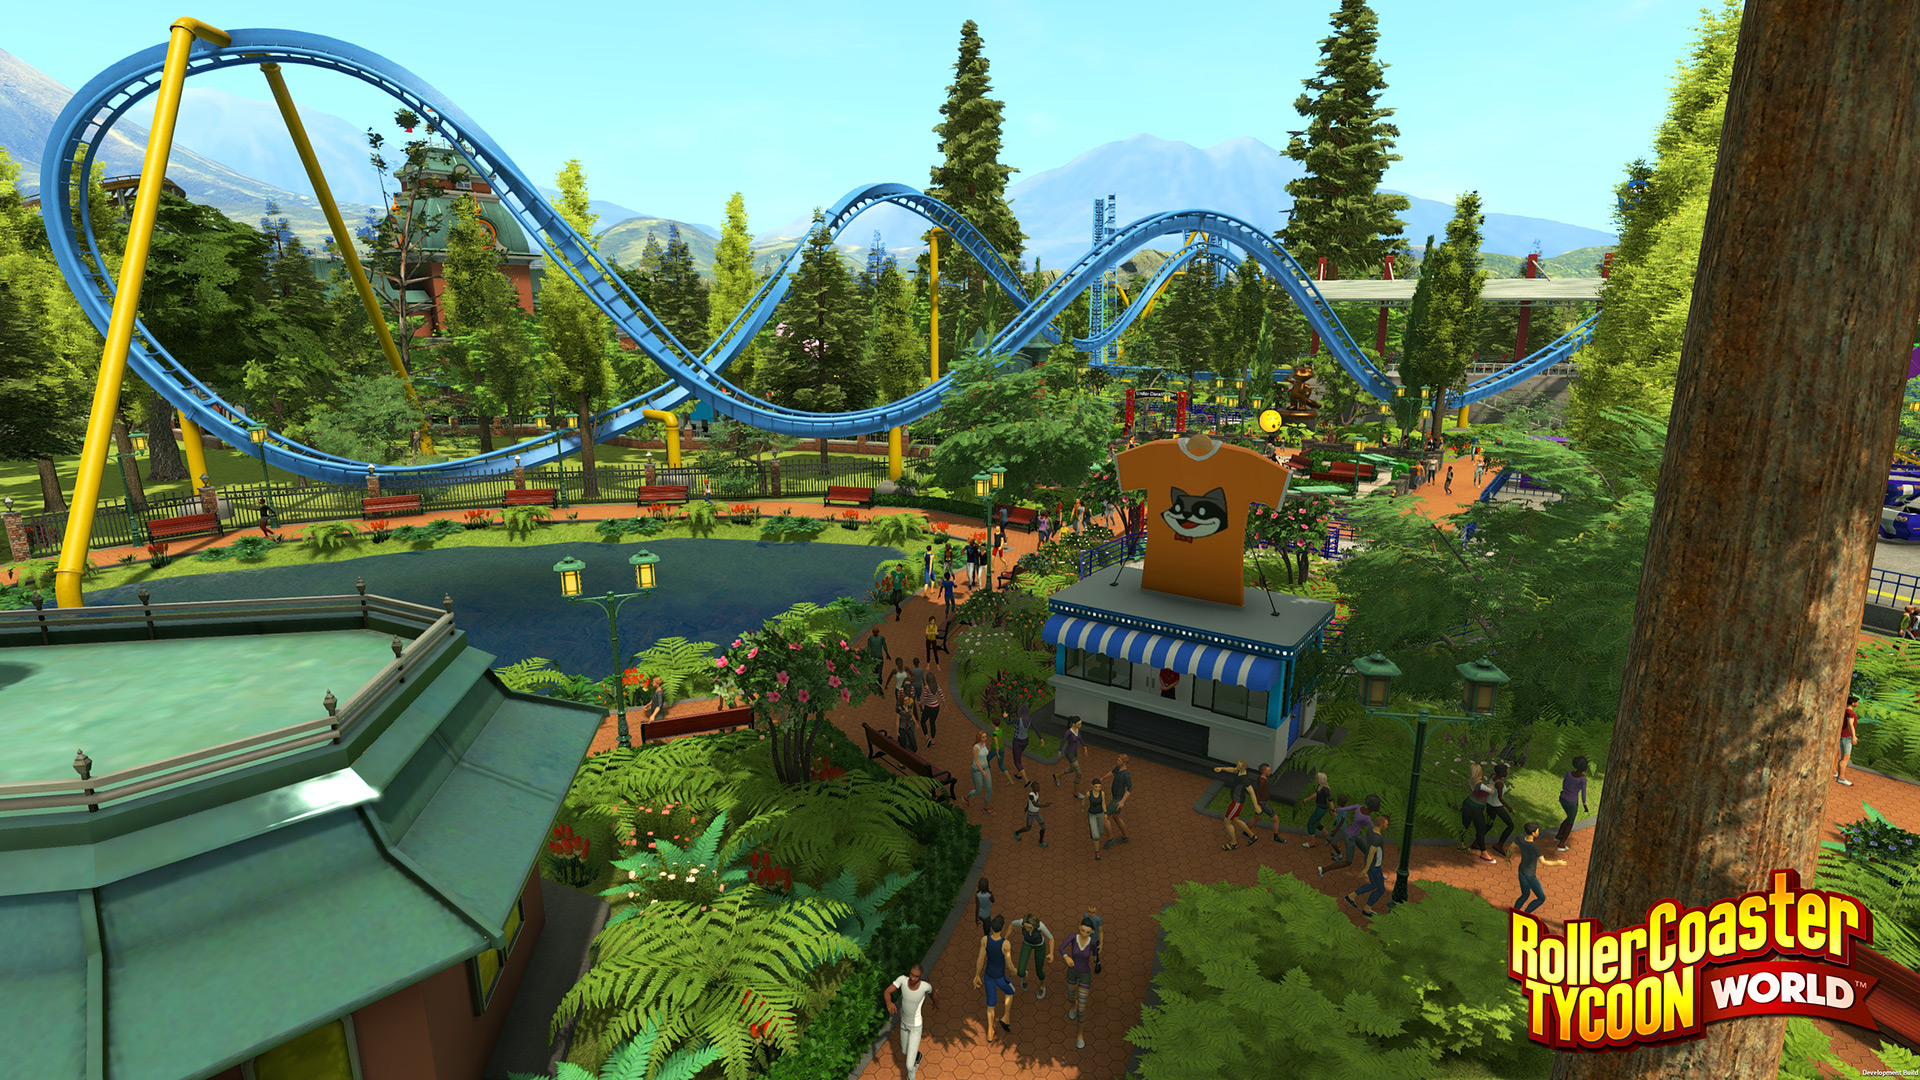 RollerCoaster Tycoon World's focus on freedom makes it exciting